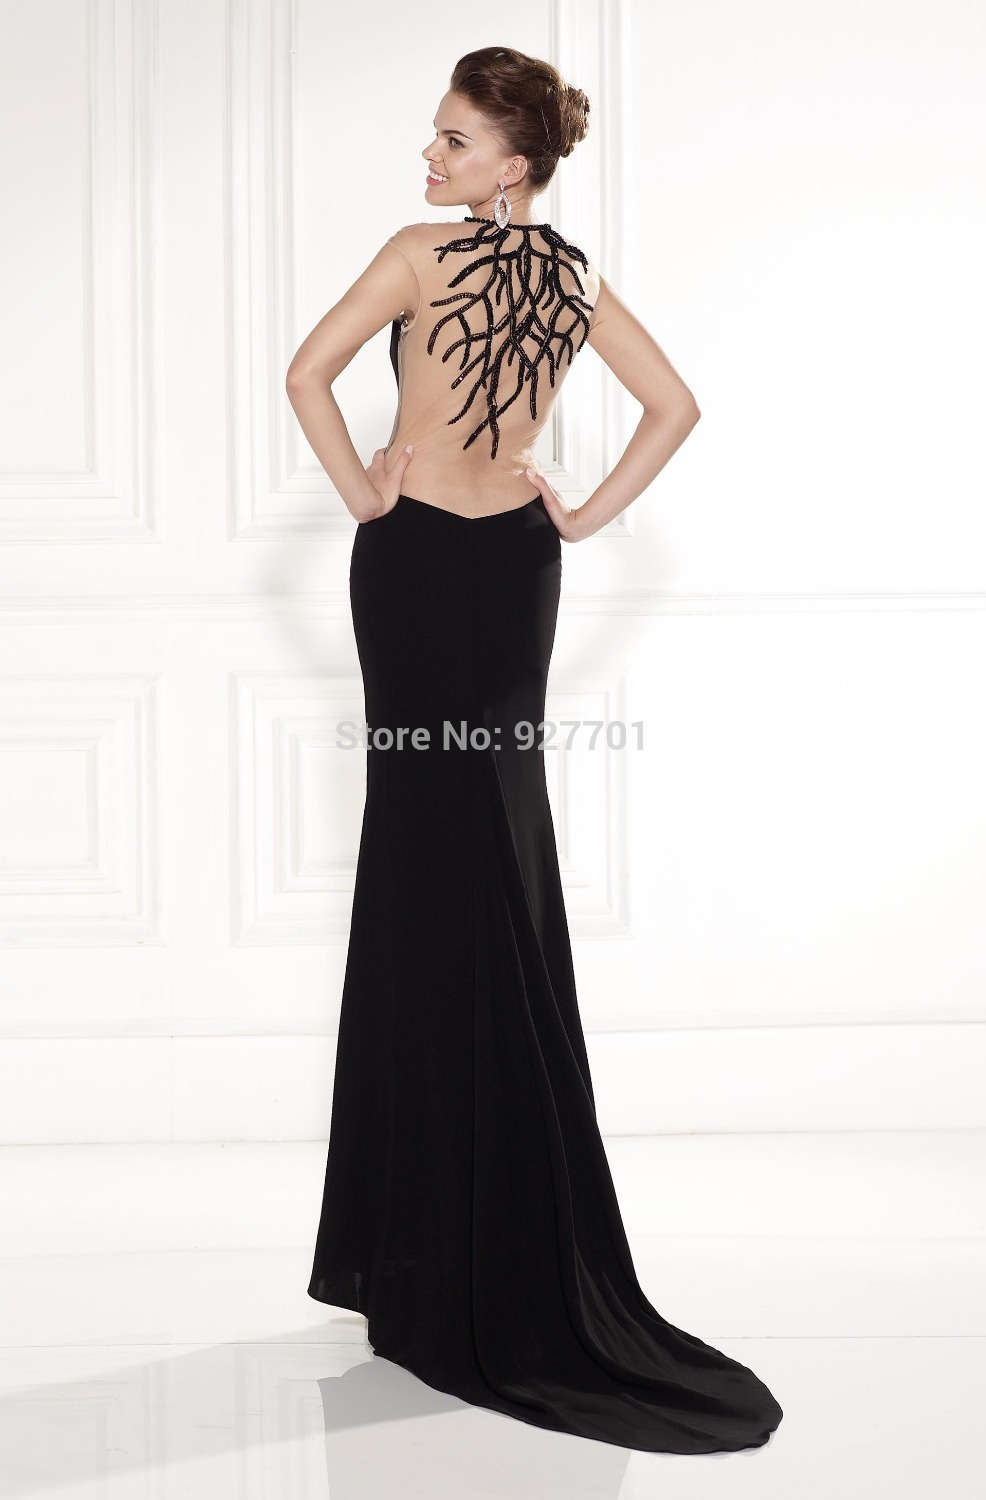 Images of Prom Dresses Dallas - Fashion Trends and Models